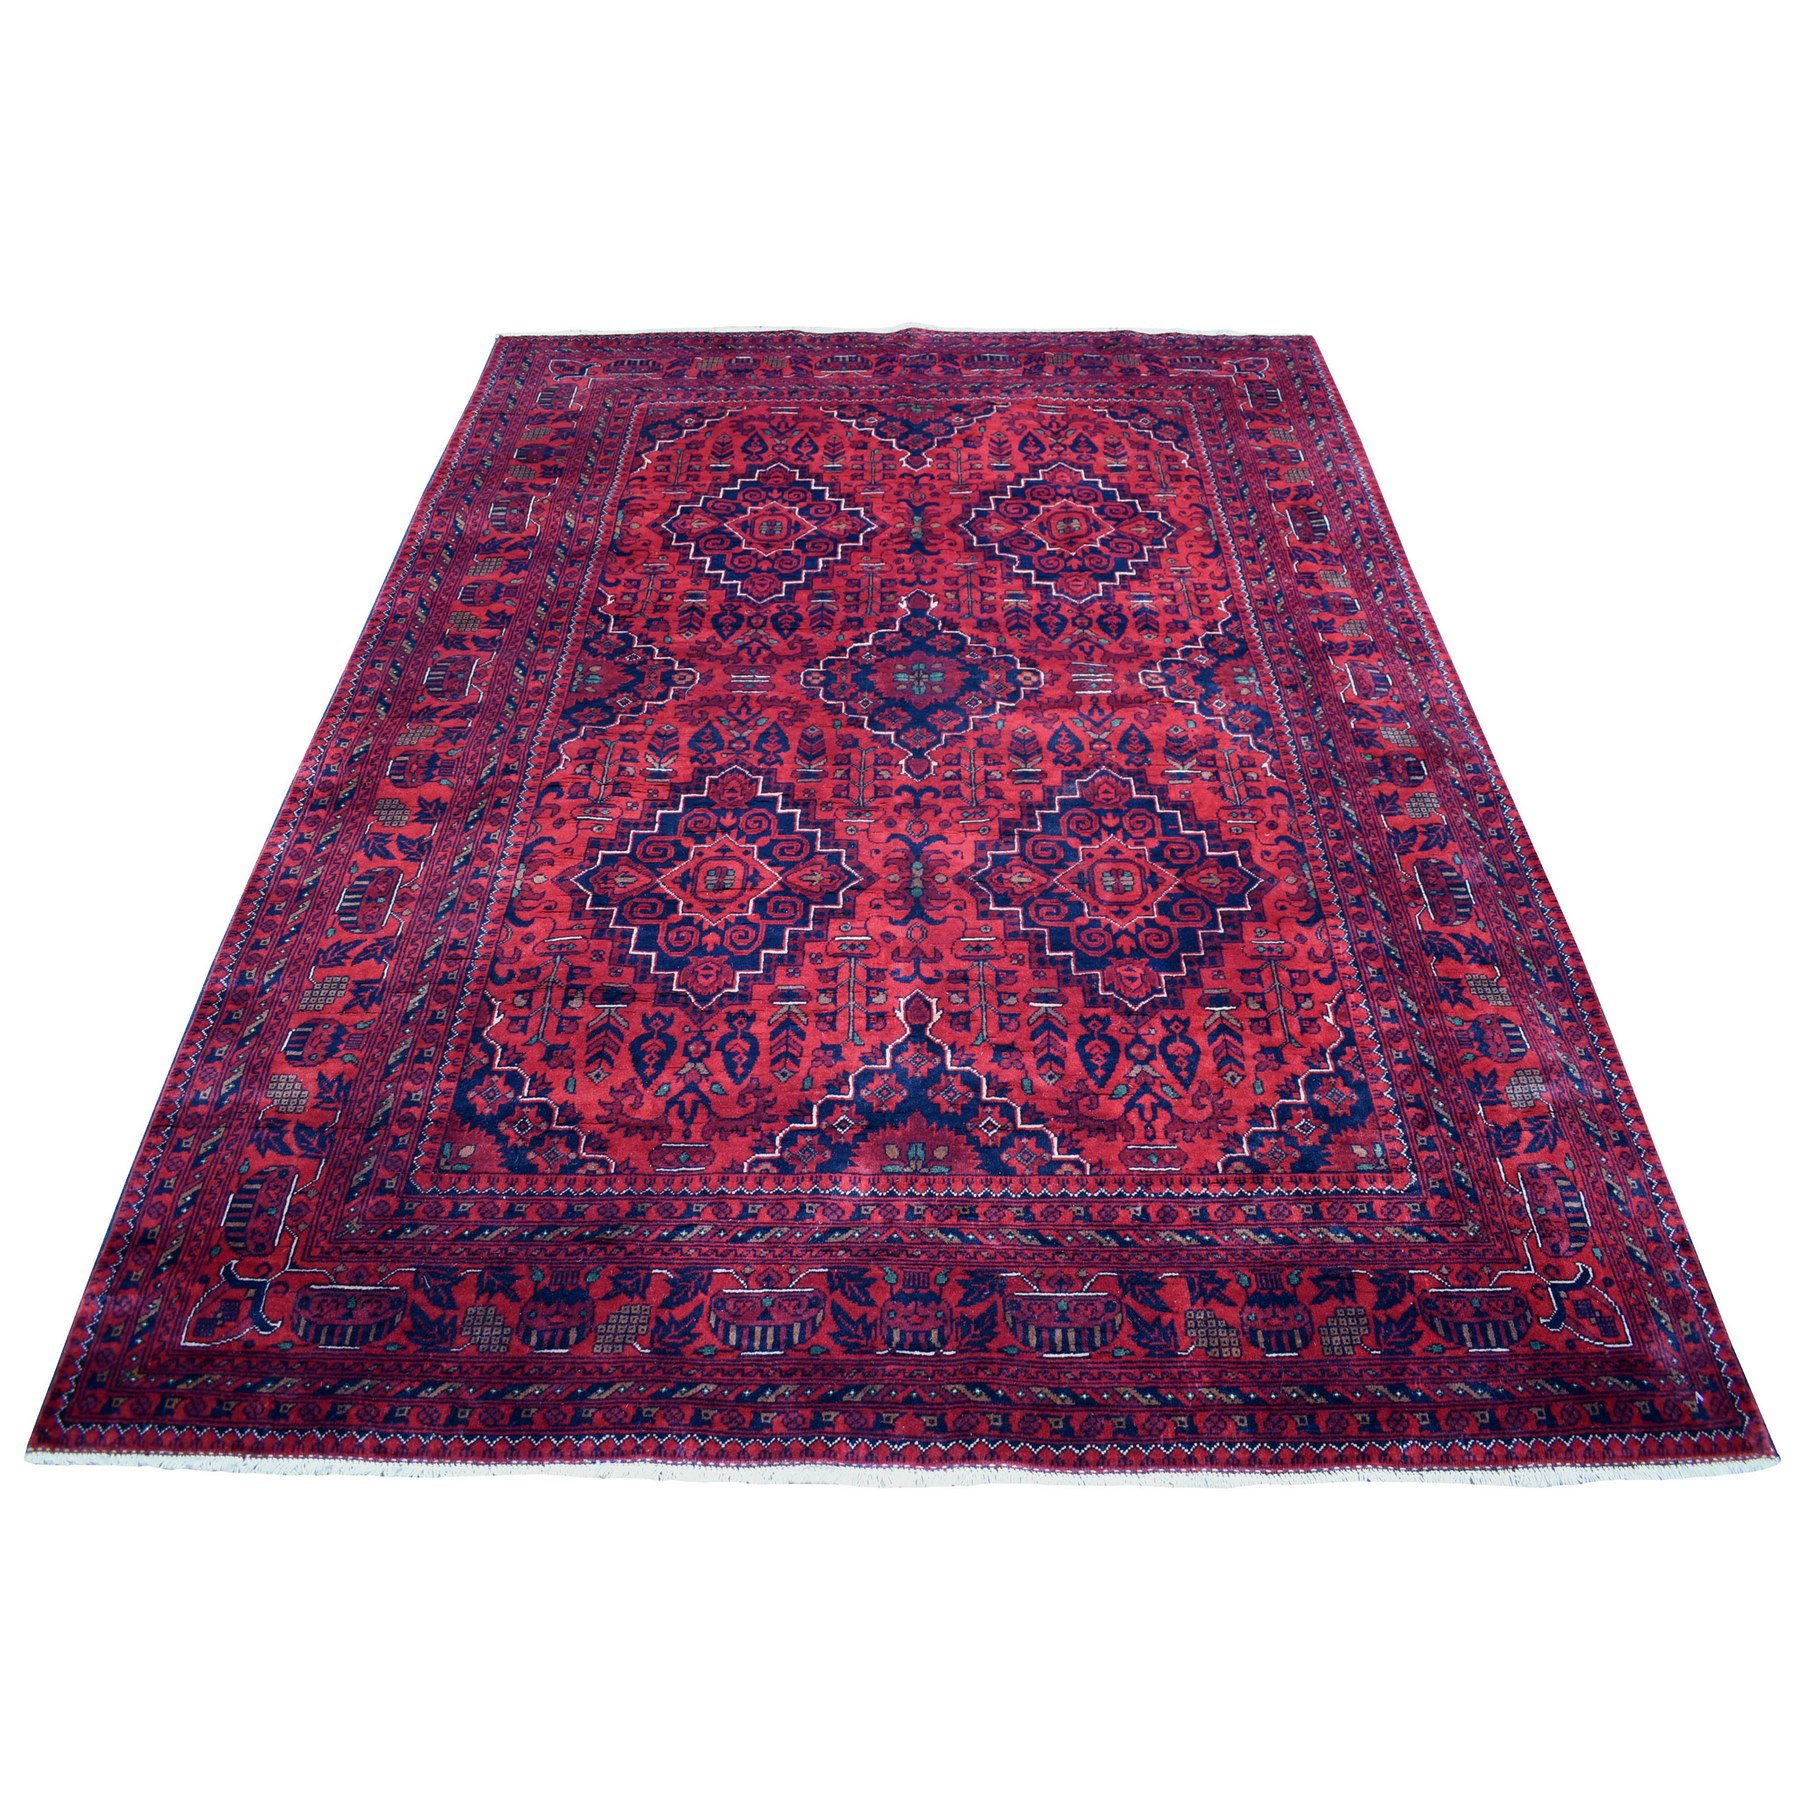 Nomadic And Village Collection Hand Knotted Red Rug No: 1136120